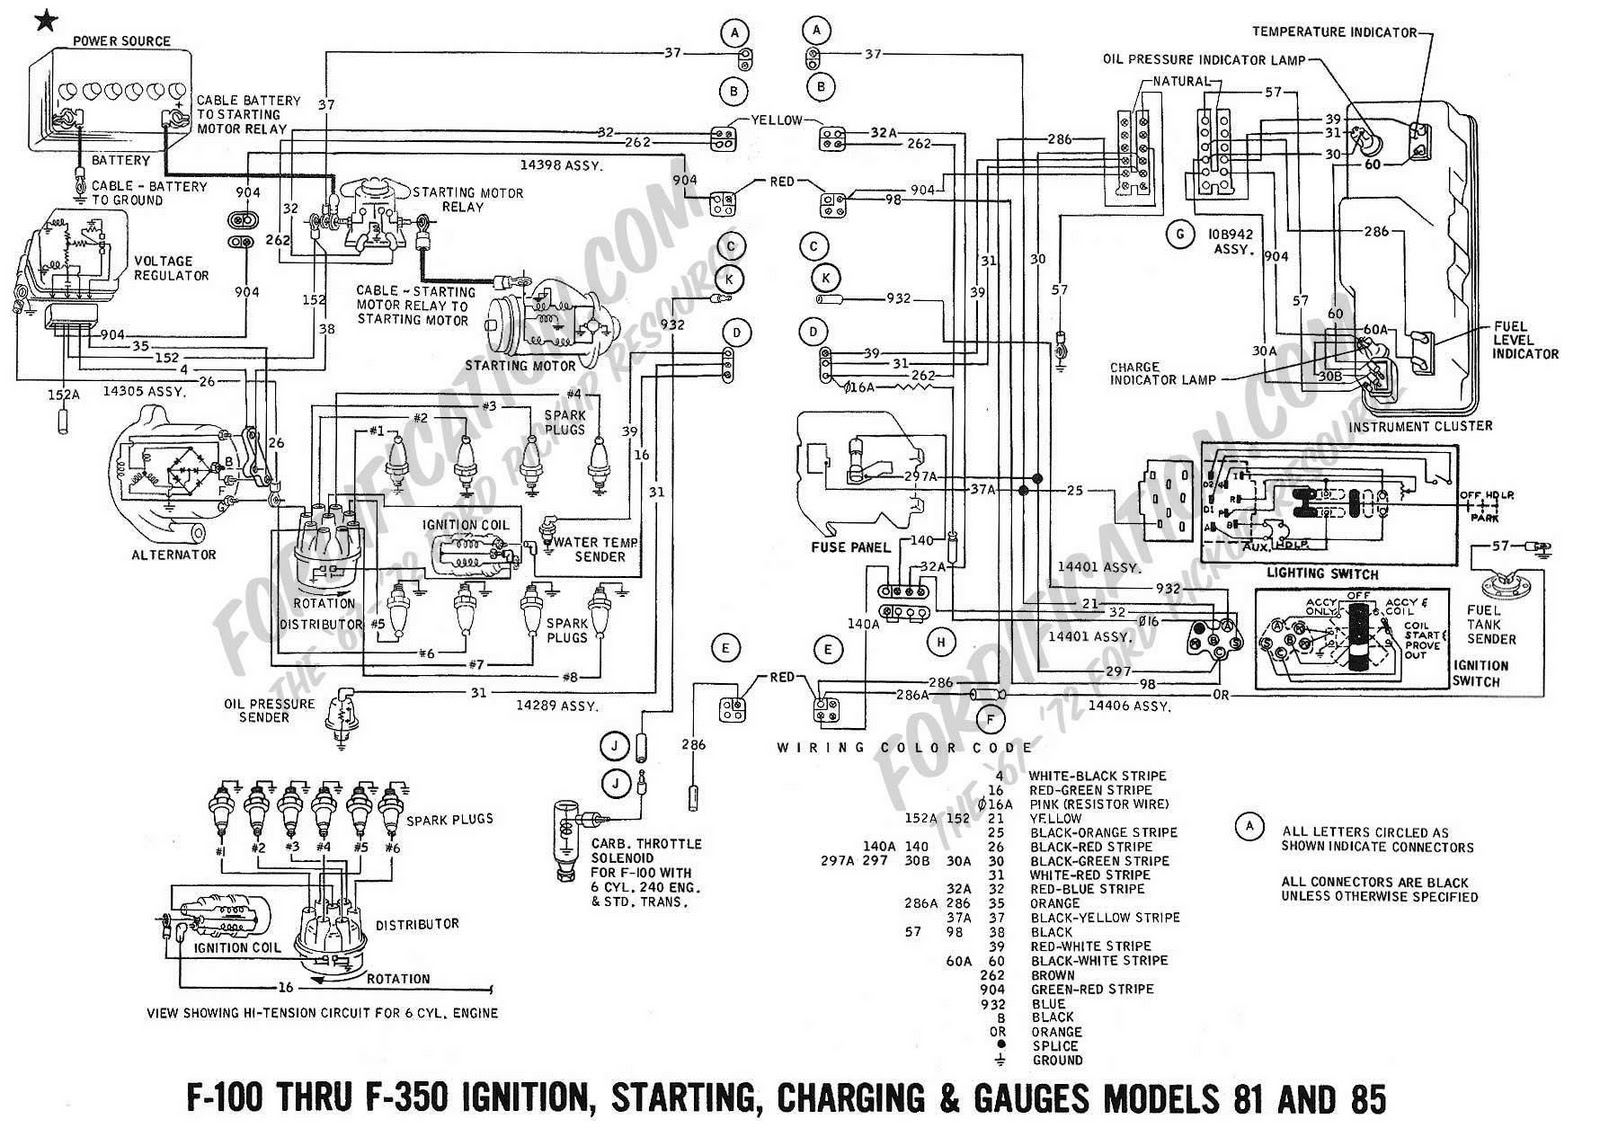 1968 Galaxie Wiring Diagram Schematics 1967 Camaro Convertible Schematic Heater Ford Just Data